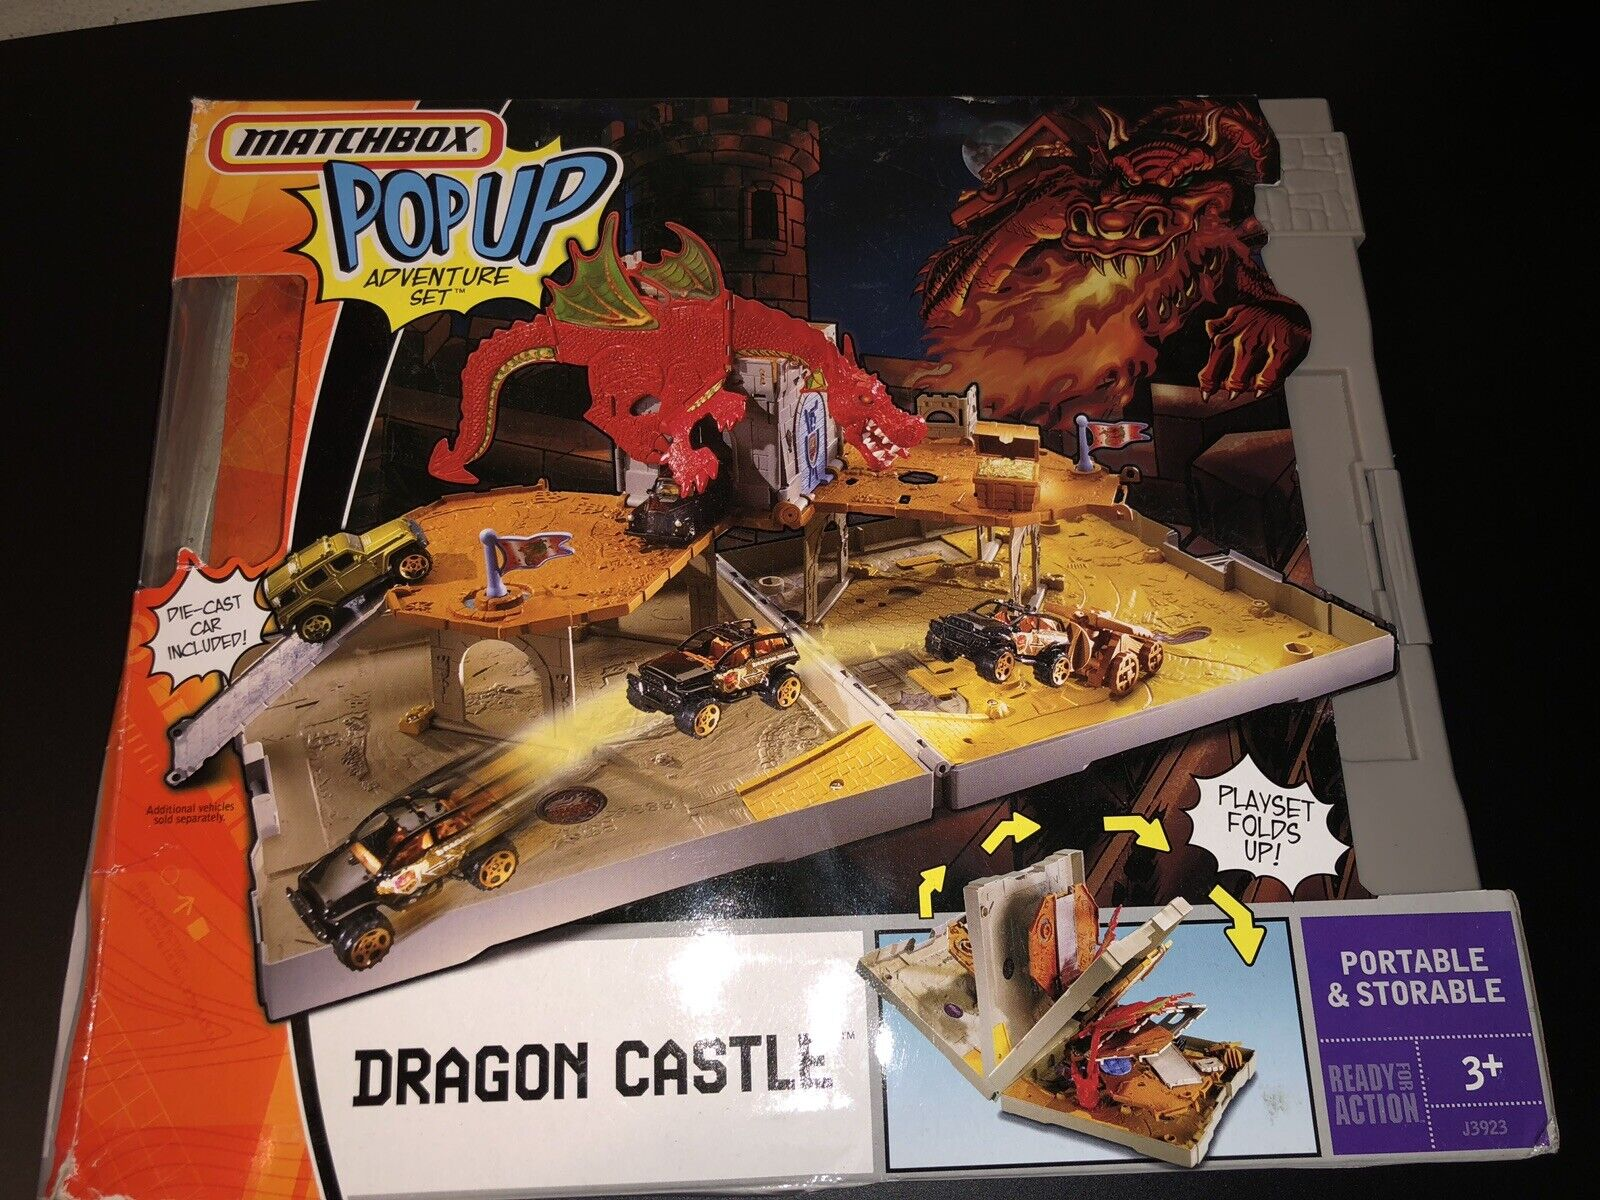 2005 Matchbox Pop Up Adventure Set Dragon Castle Used & Missing Cars